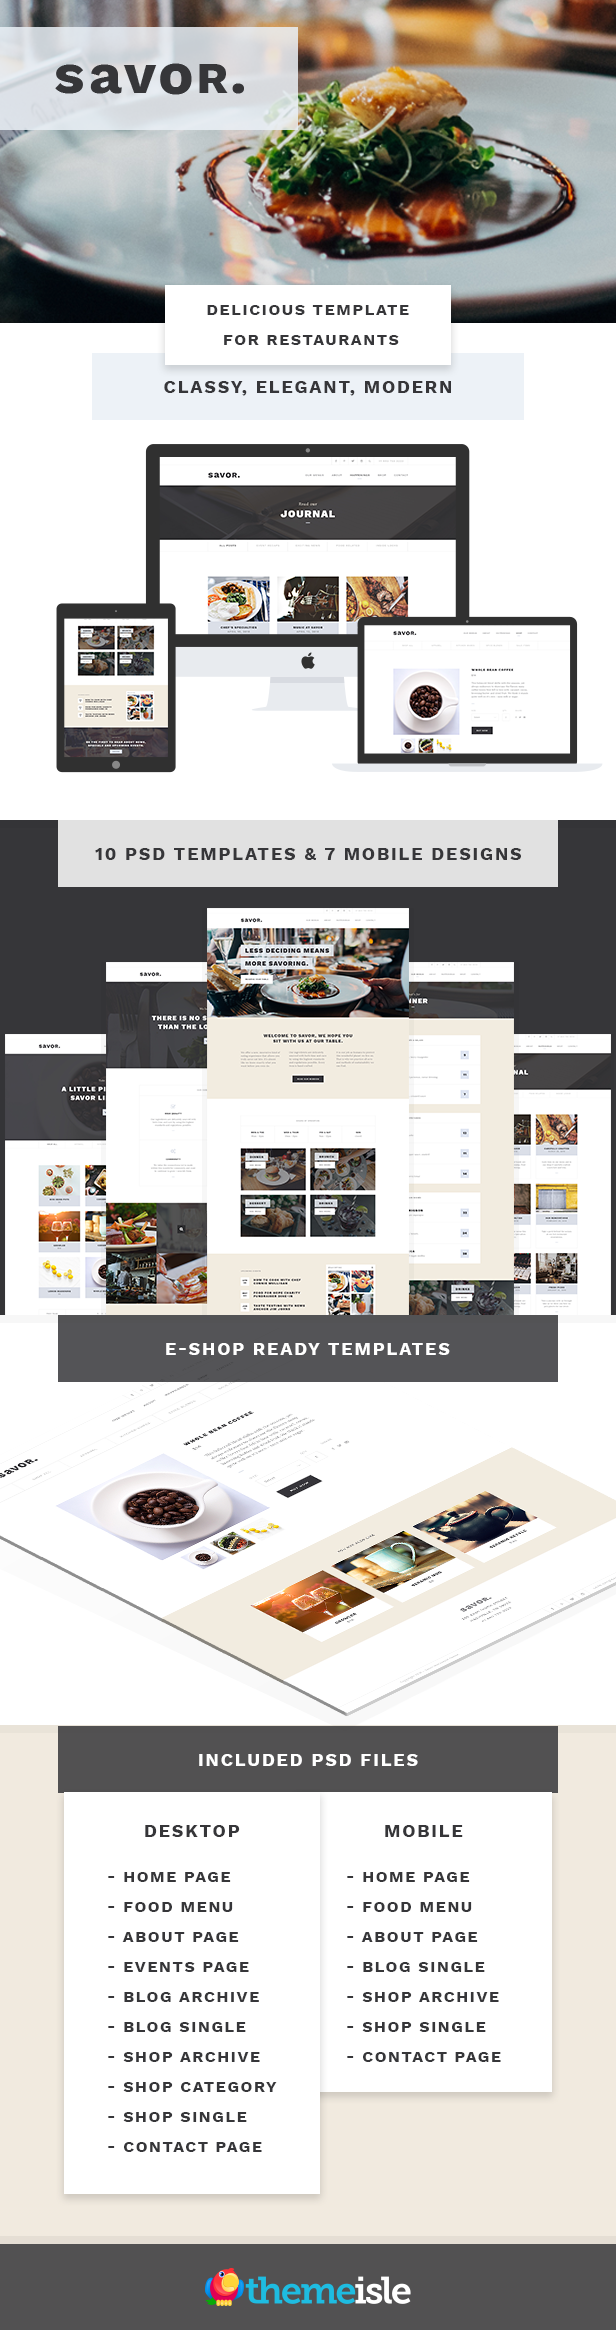 Savor - Restaurant Website Template